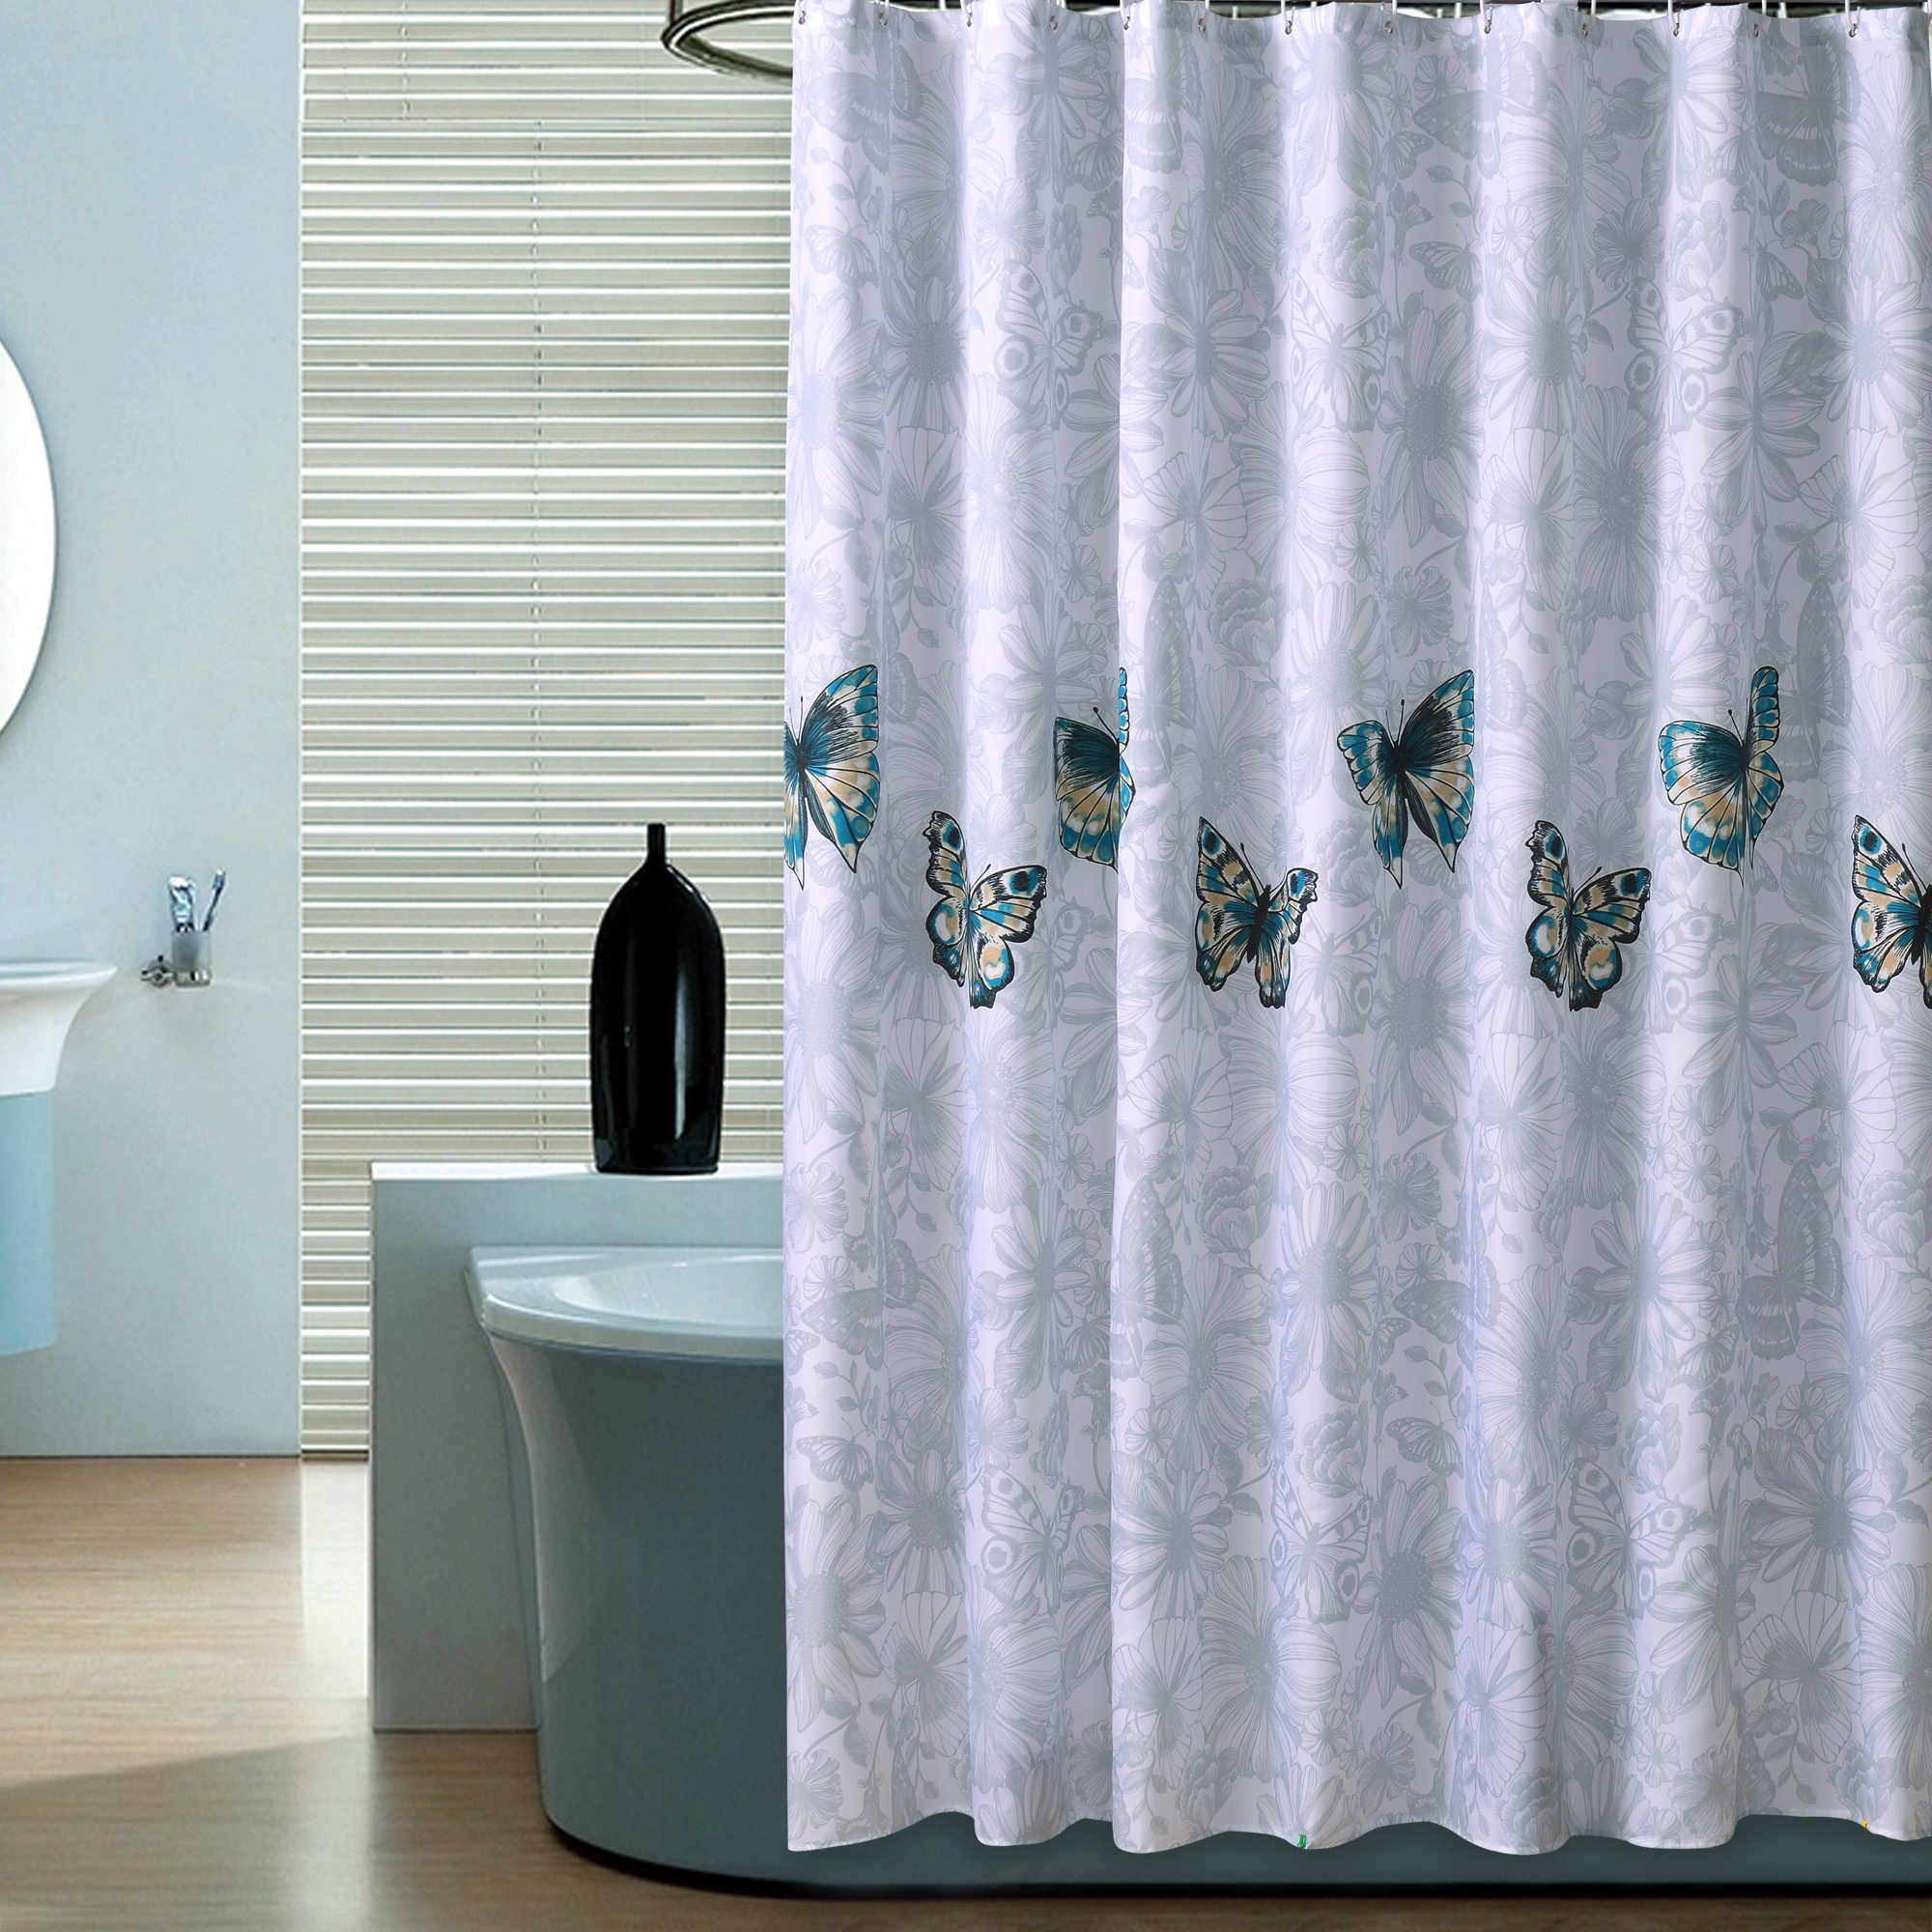 The High Grade Butterfly Shower Curtains Dacron Cloth